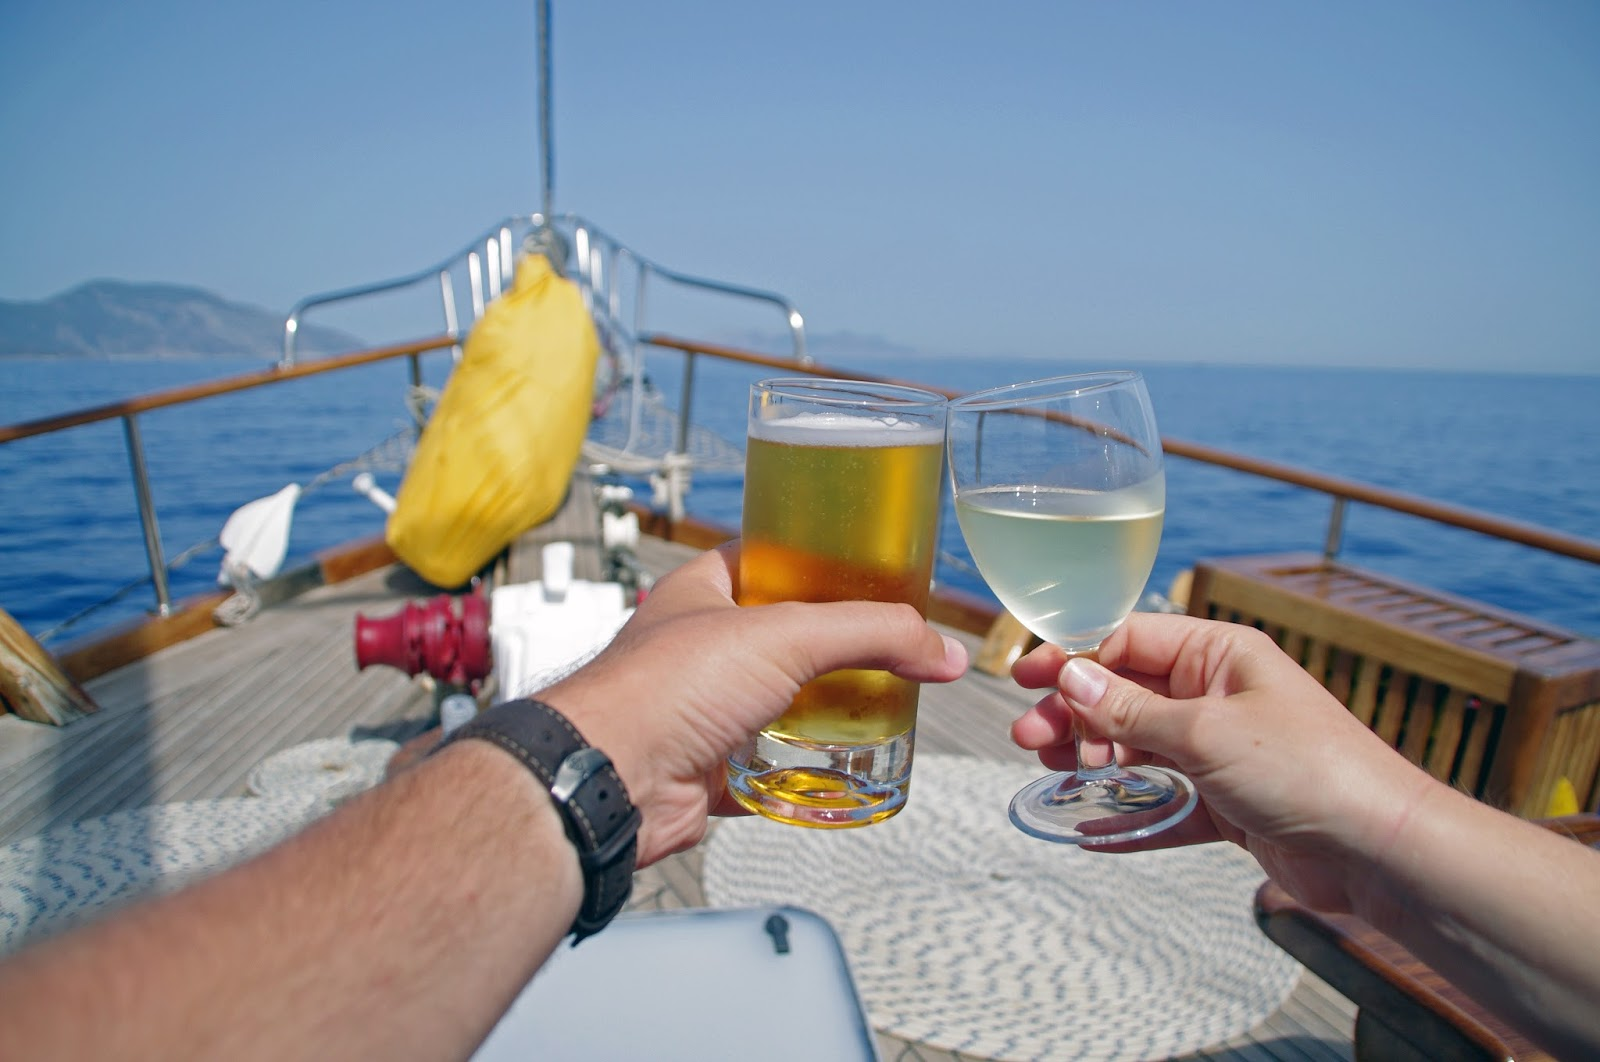 Cheers to sailing in Turkey